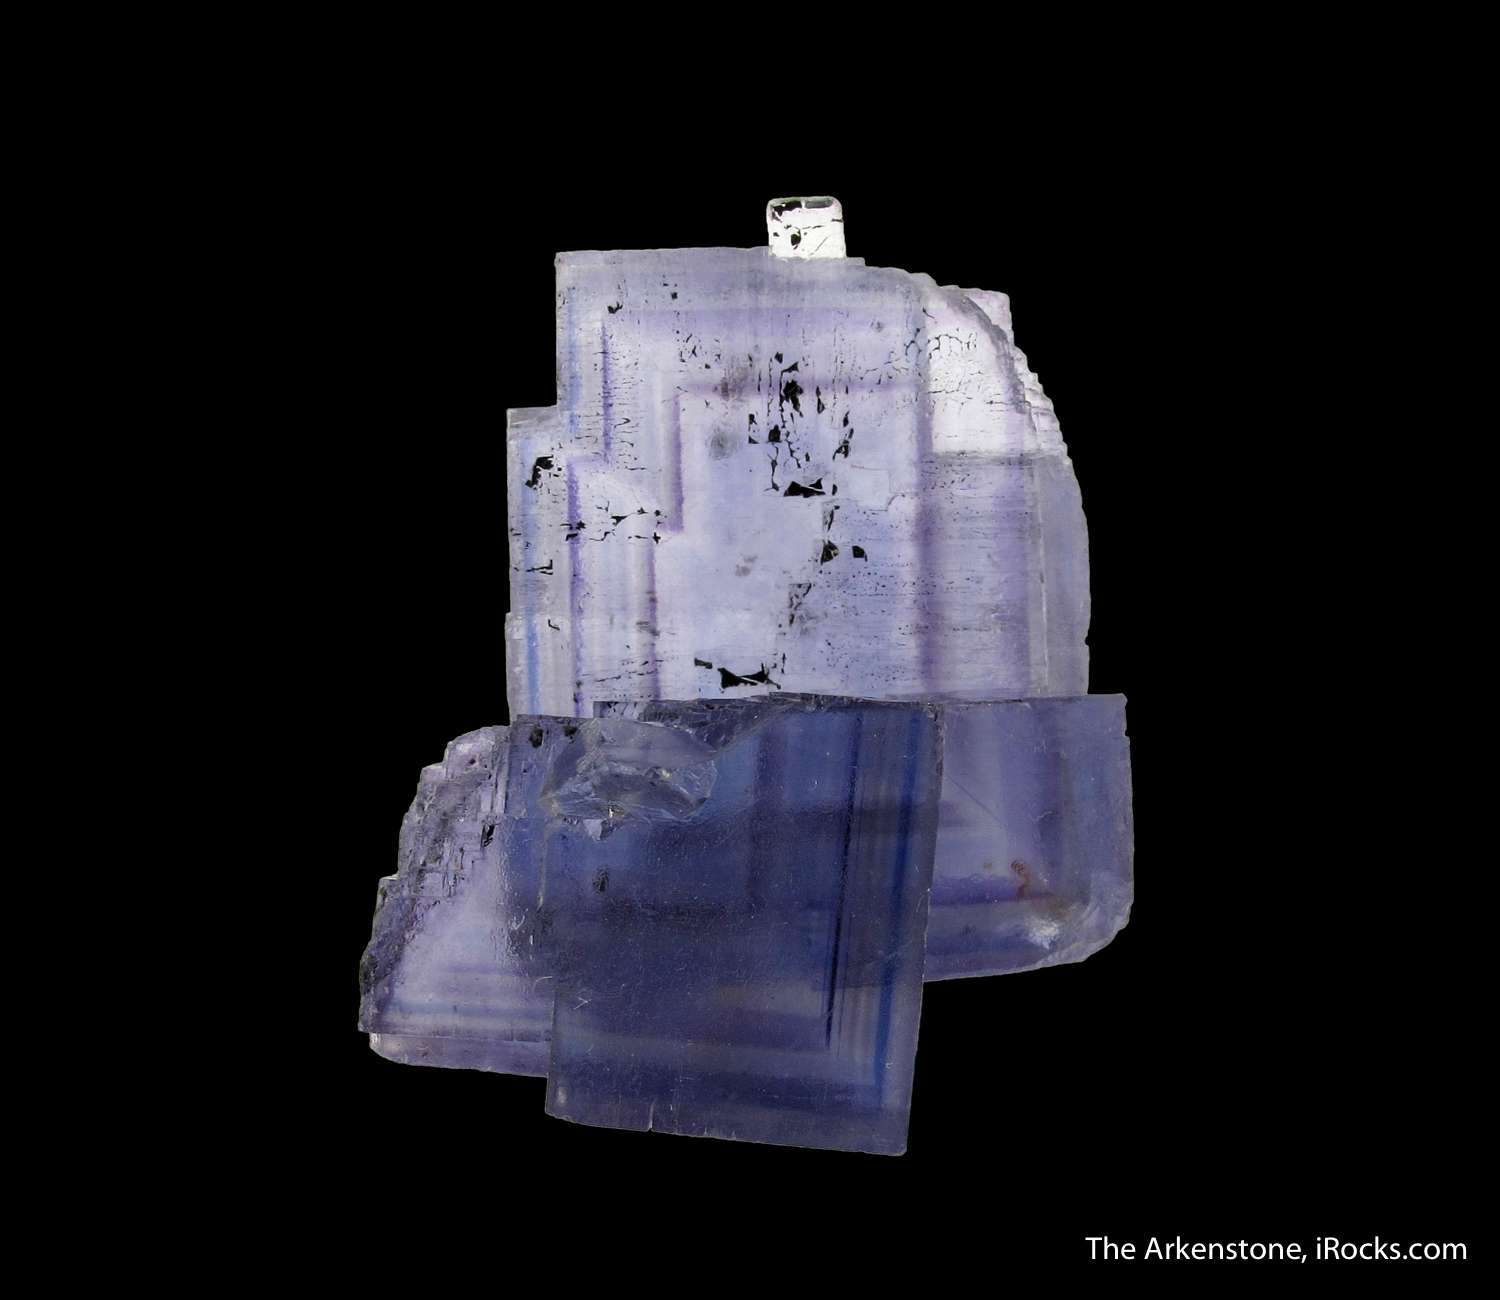 Exceptional L shaped Fluorite crystal intergrown Fluorite forms